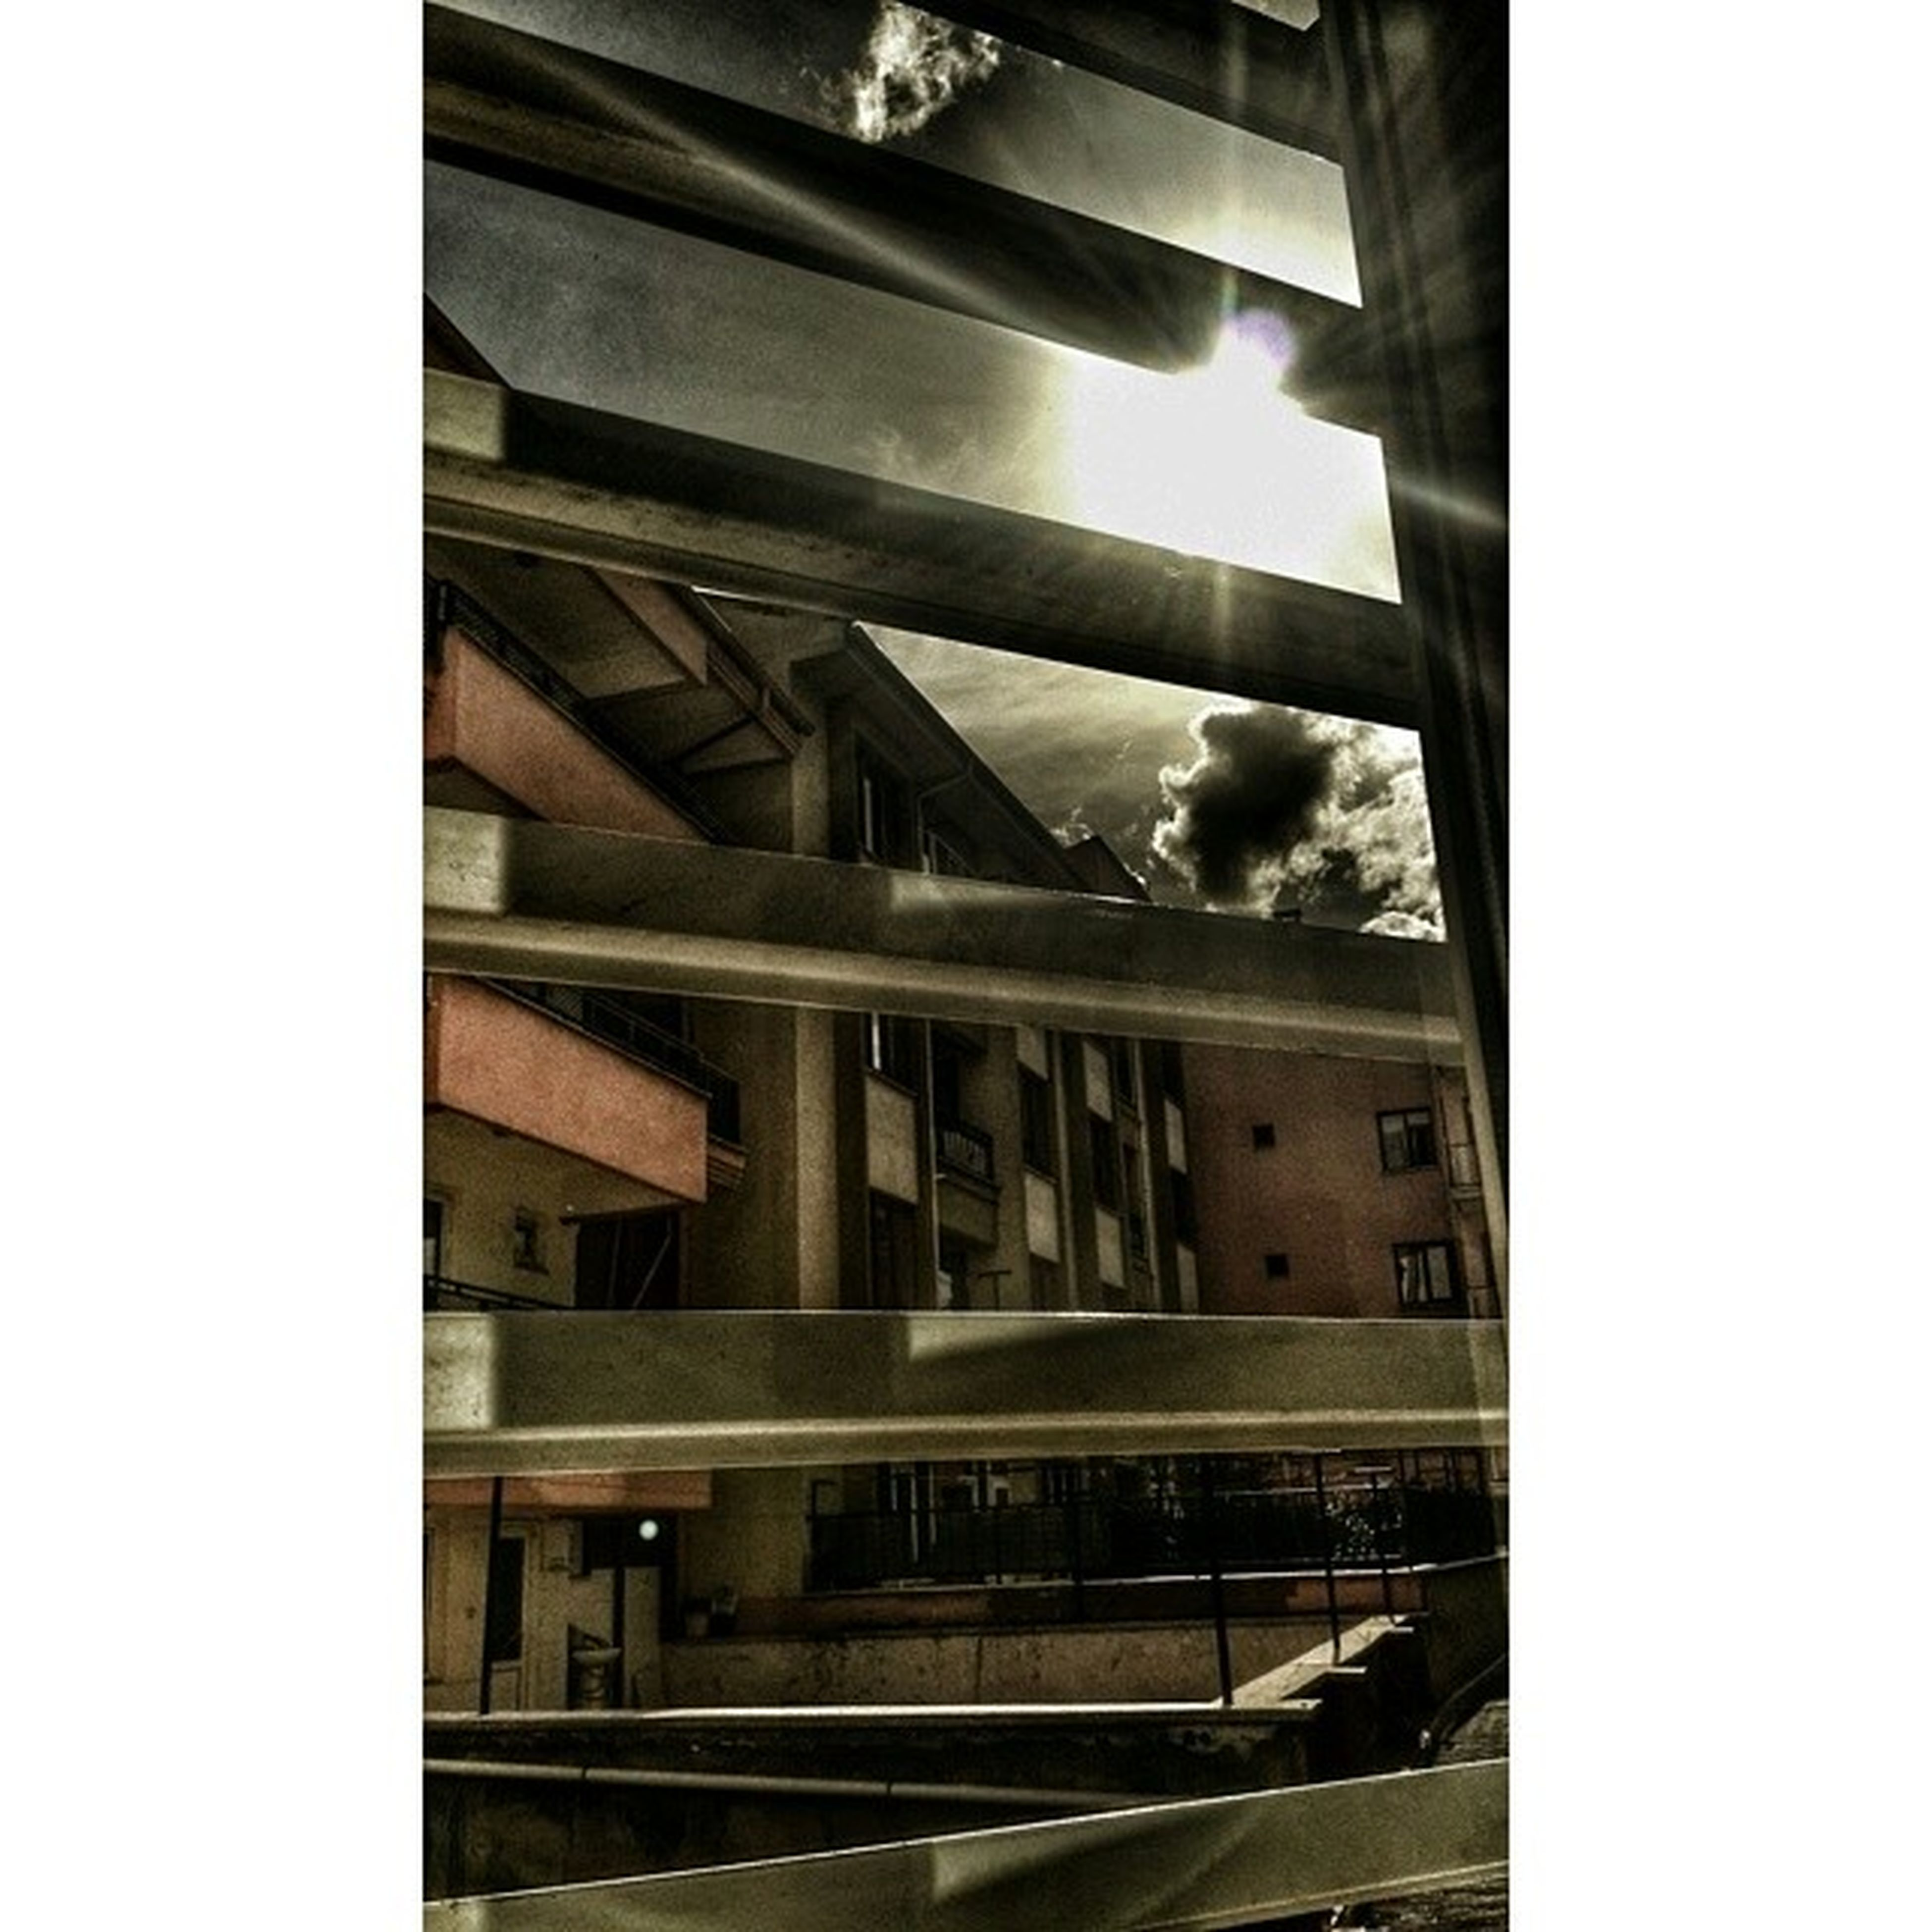 architecture, built structure, indoors, transfer print, low angle view, glass - material, window, building exterior, auto post production filter, reflection, transparent, bridge - man made structure, sky, railing, building, city, connection, day, no people, modern